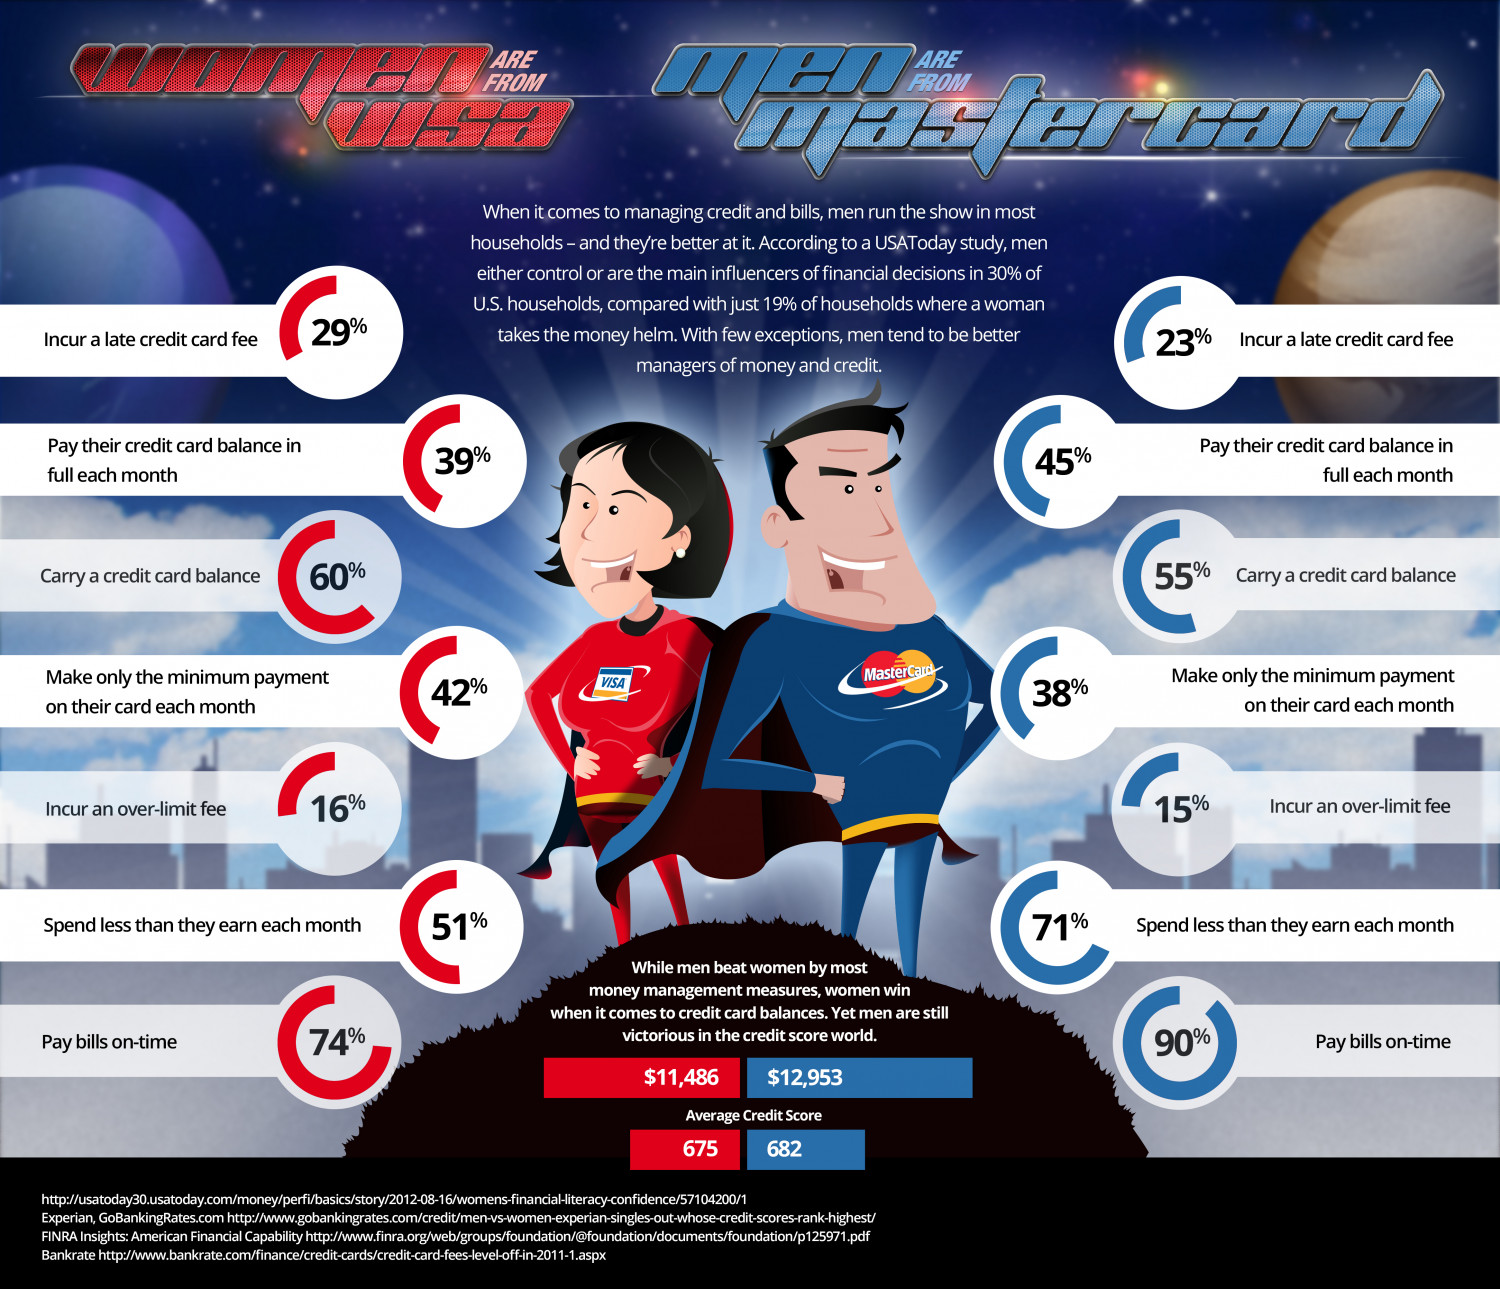 Women Are From Visa, Men Are From MasterCard Infographic